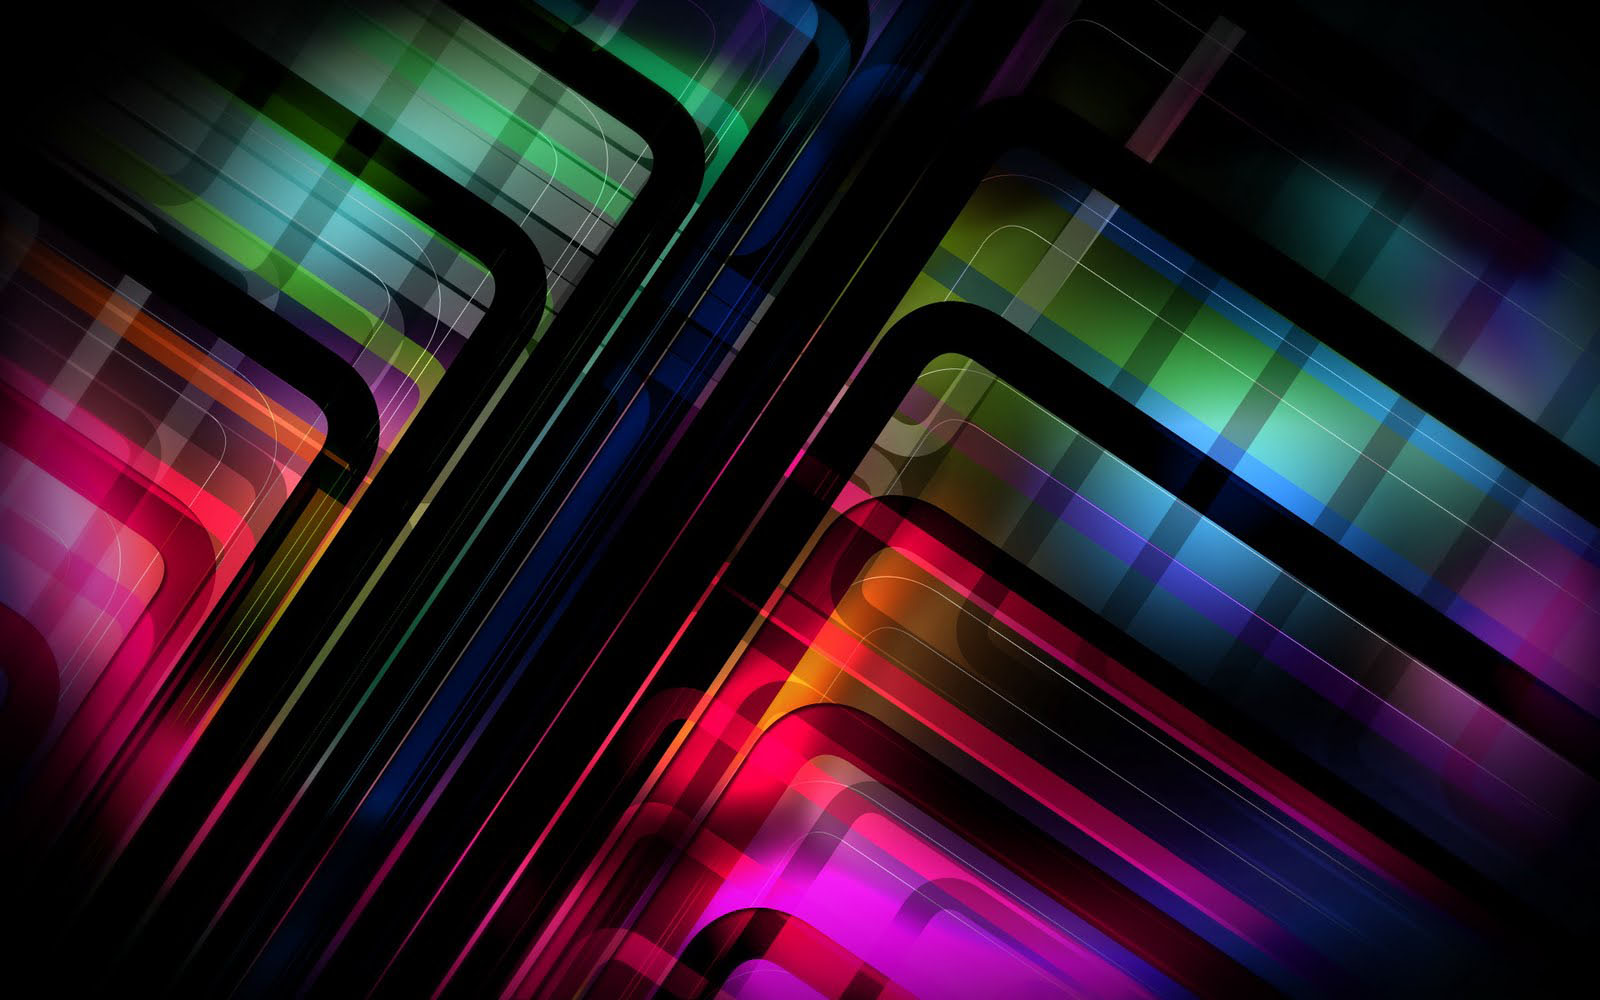 Amazing Wallpaper High Resolution Abstract - Abstract+Wallpapers+for+Free+%25281%2529  You Should Have_648532.jpg